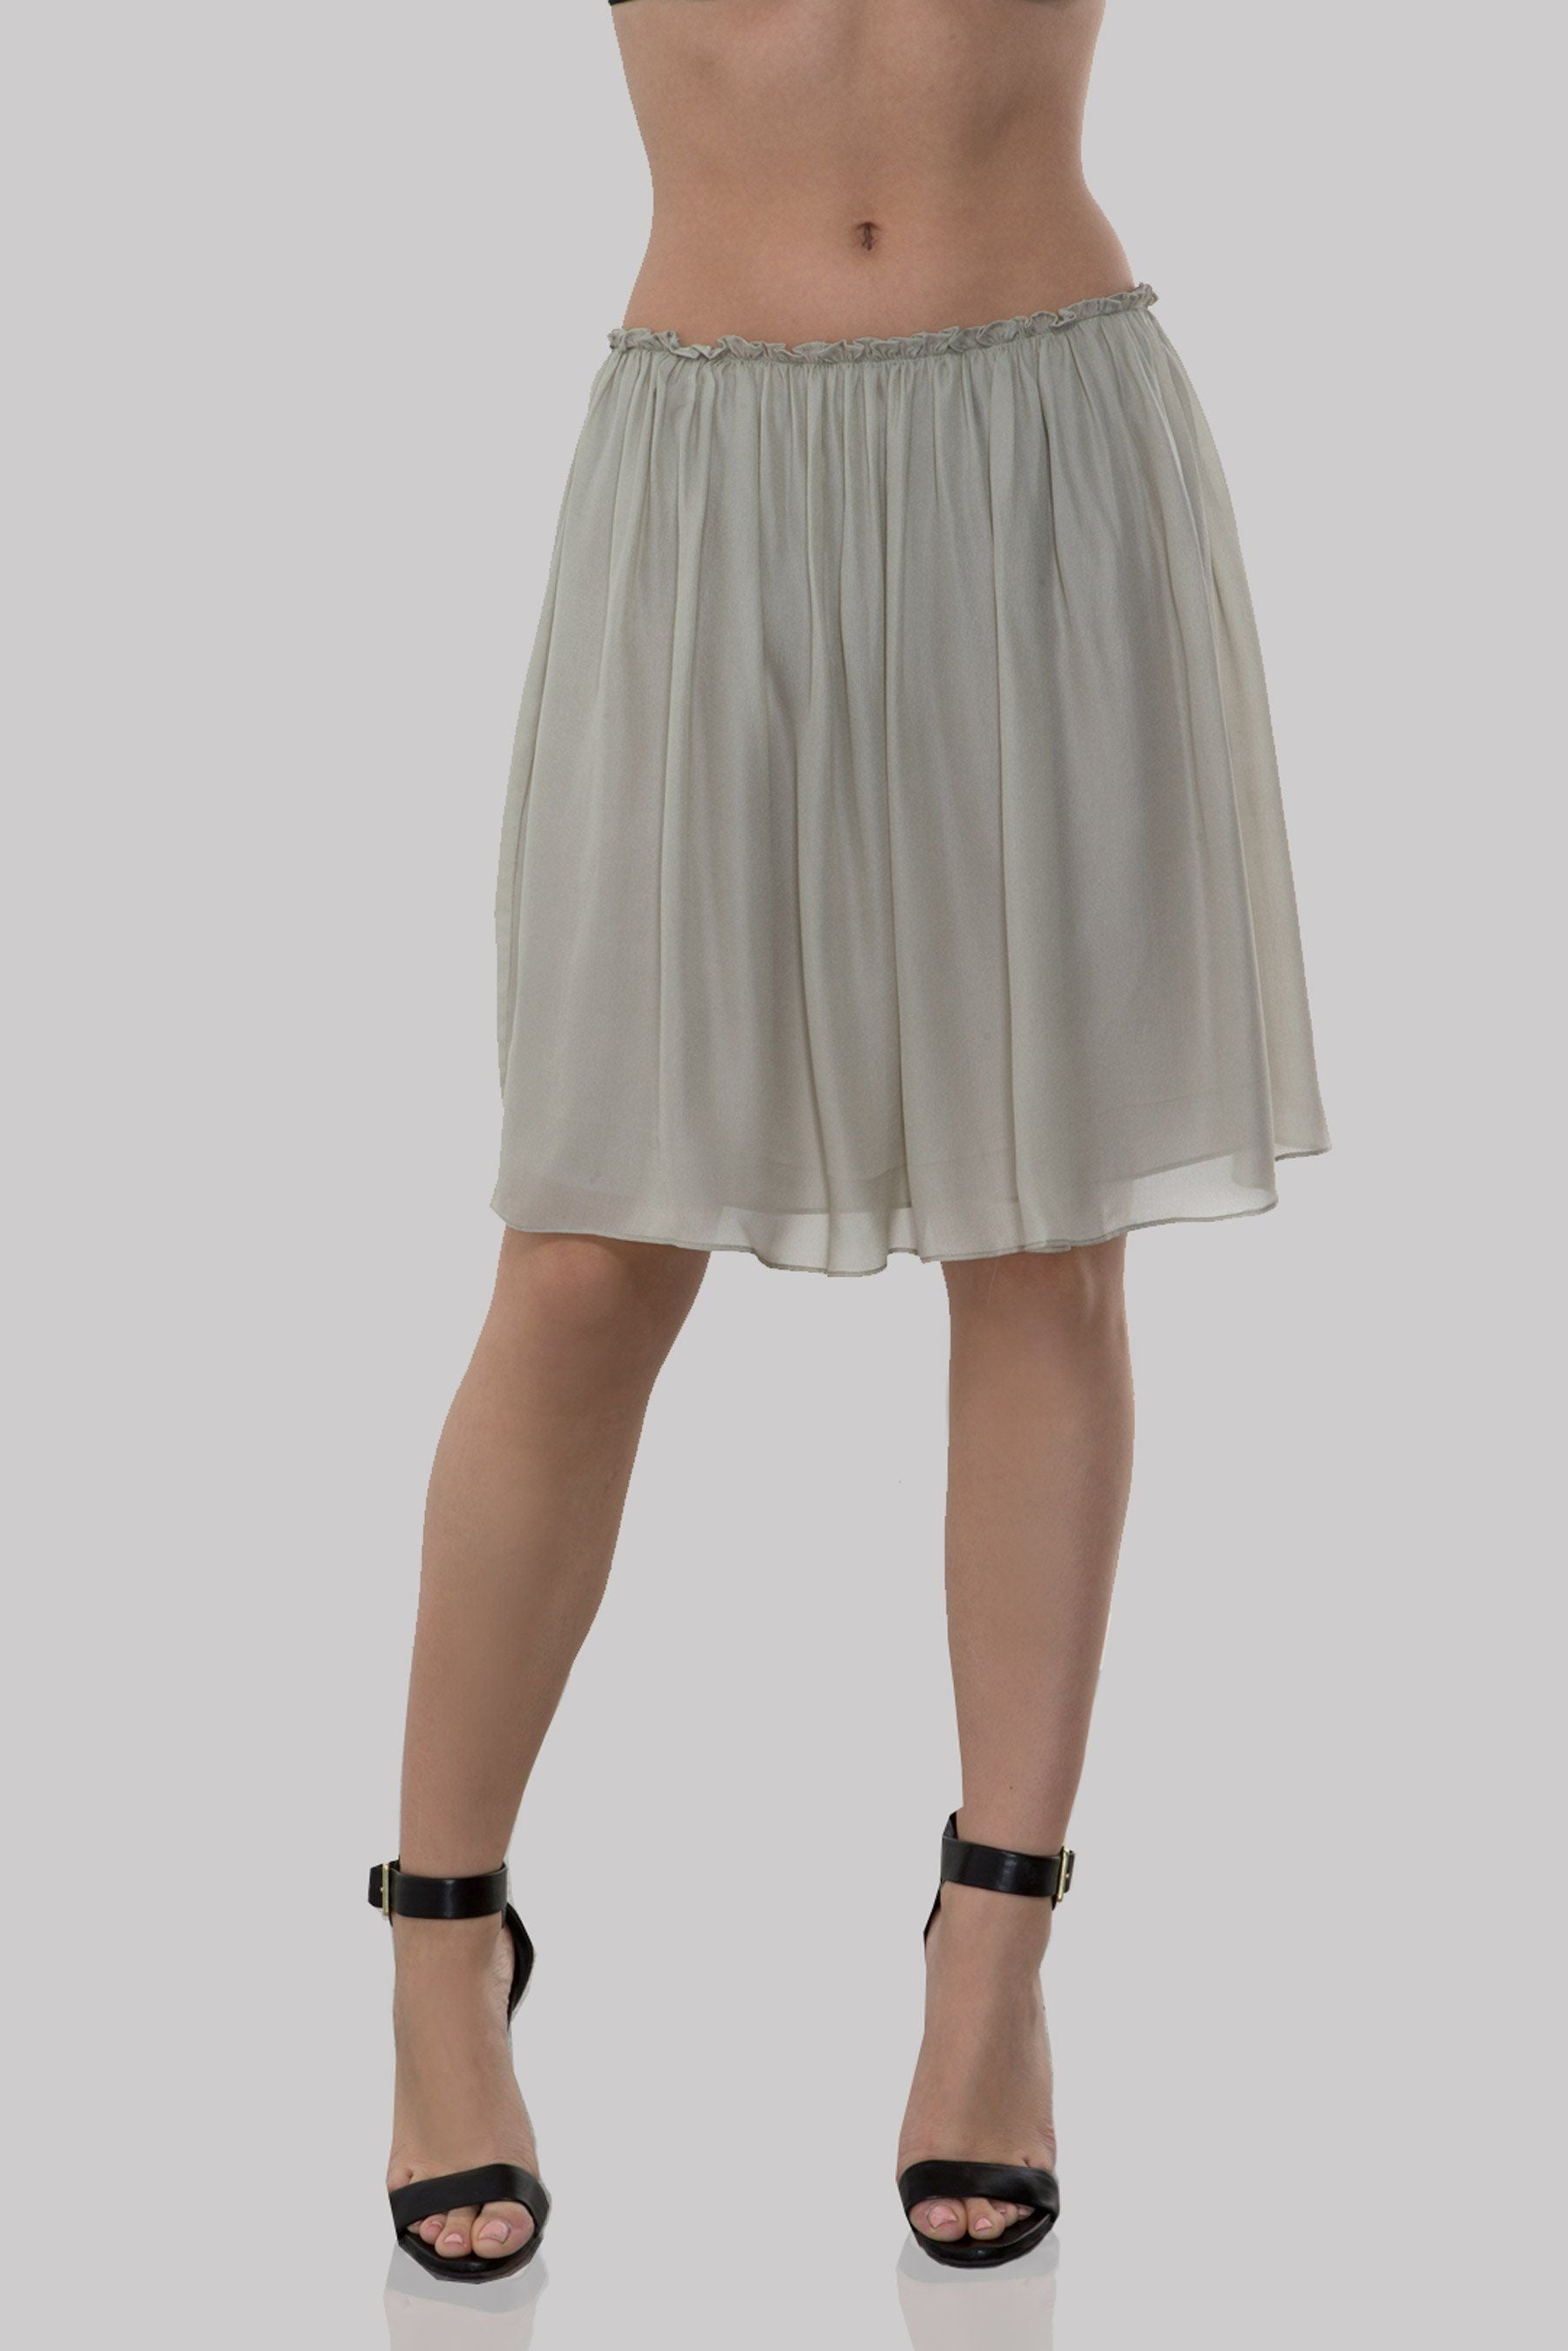 S798 PRINTED DBL GGT PLEATED SKIRT LIGHT GREY